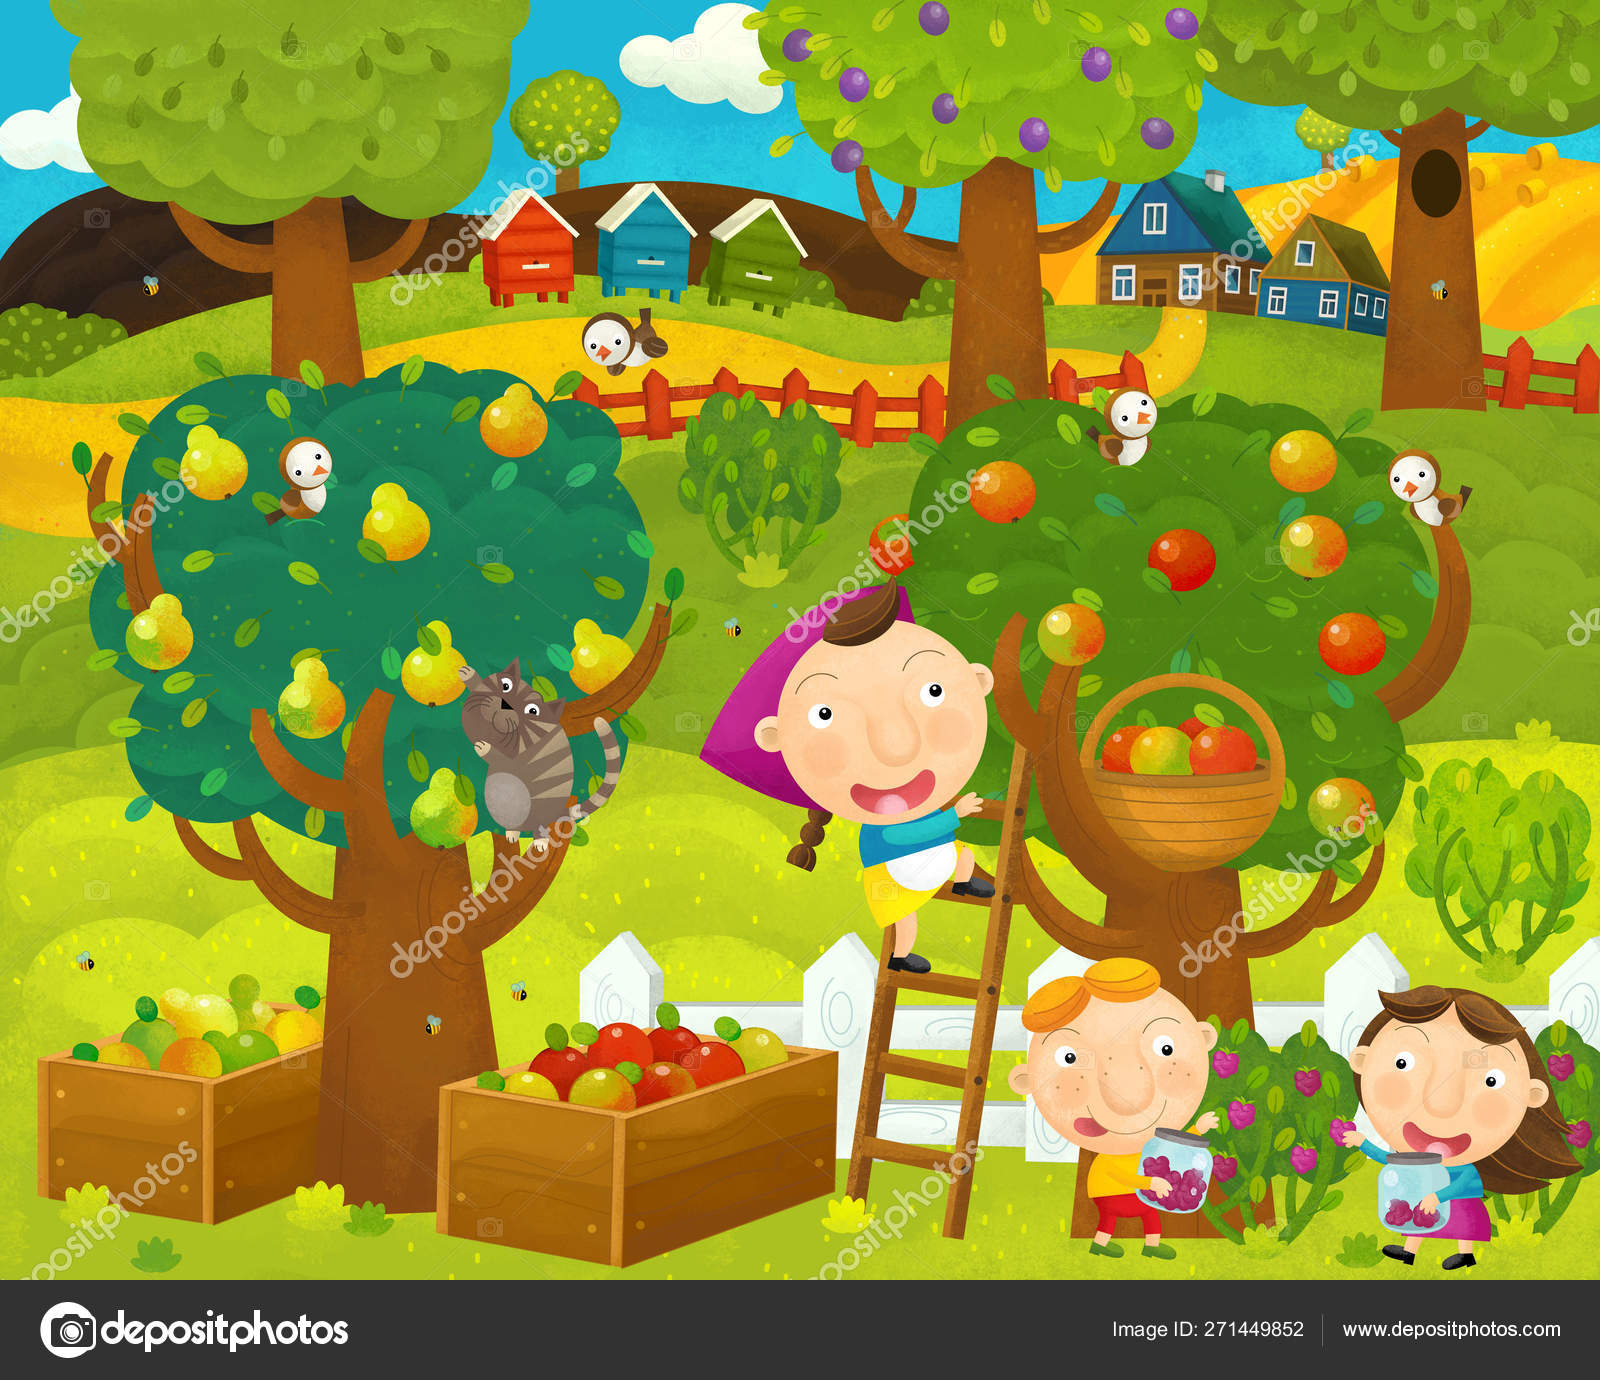 Cartoon Happy And Funny Farm Scene With Fruit Orchard Apple Trees And Pear Trees Illustration For Children Stock Photo C Agaes8080 271449852 But with the vast variety of trees available out there. cartoon happy and funny farm scene with fruit orchard apple trees and pear trees illustration for children stock photo c agaes8080 271449852